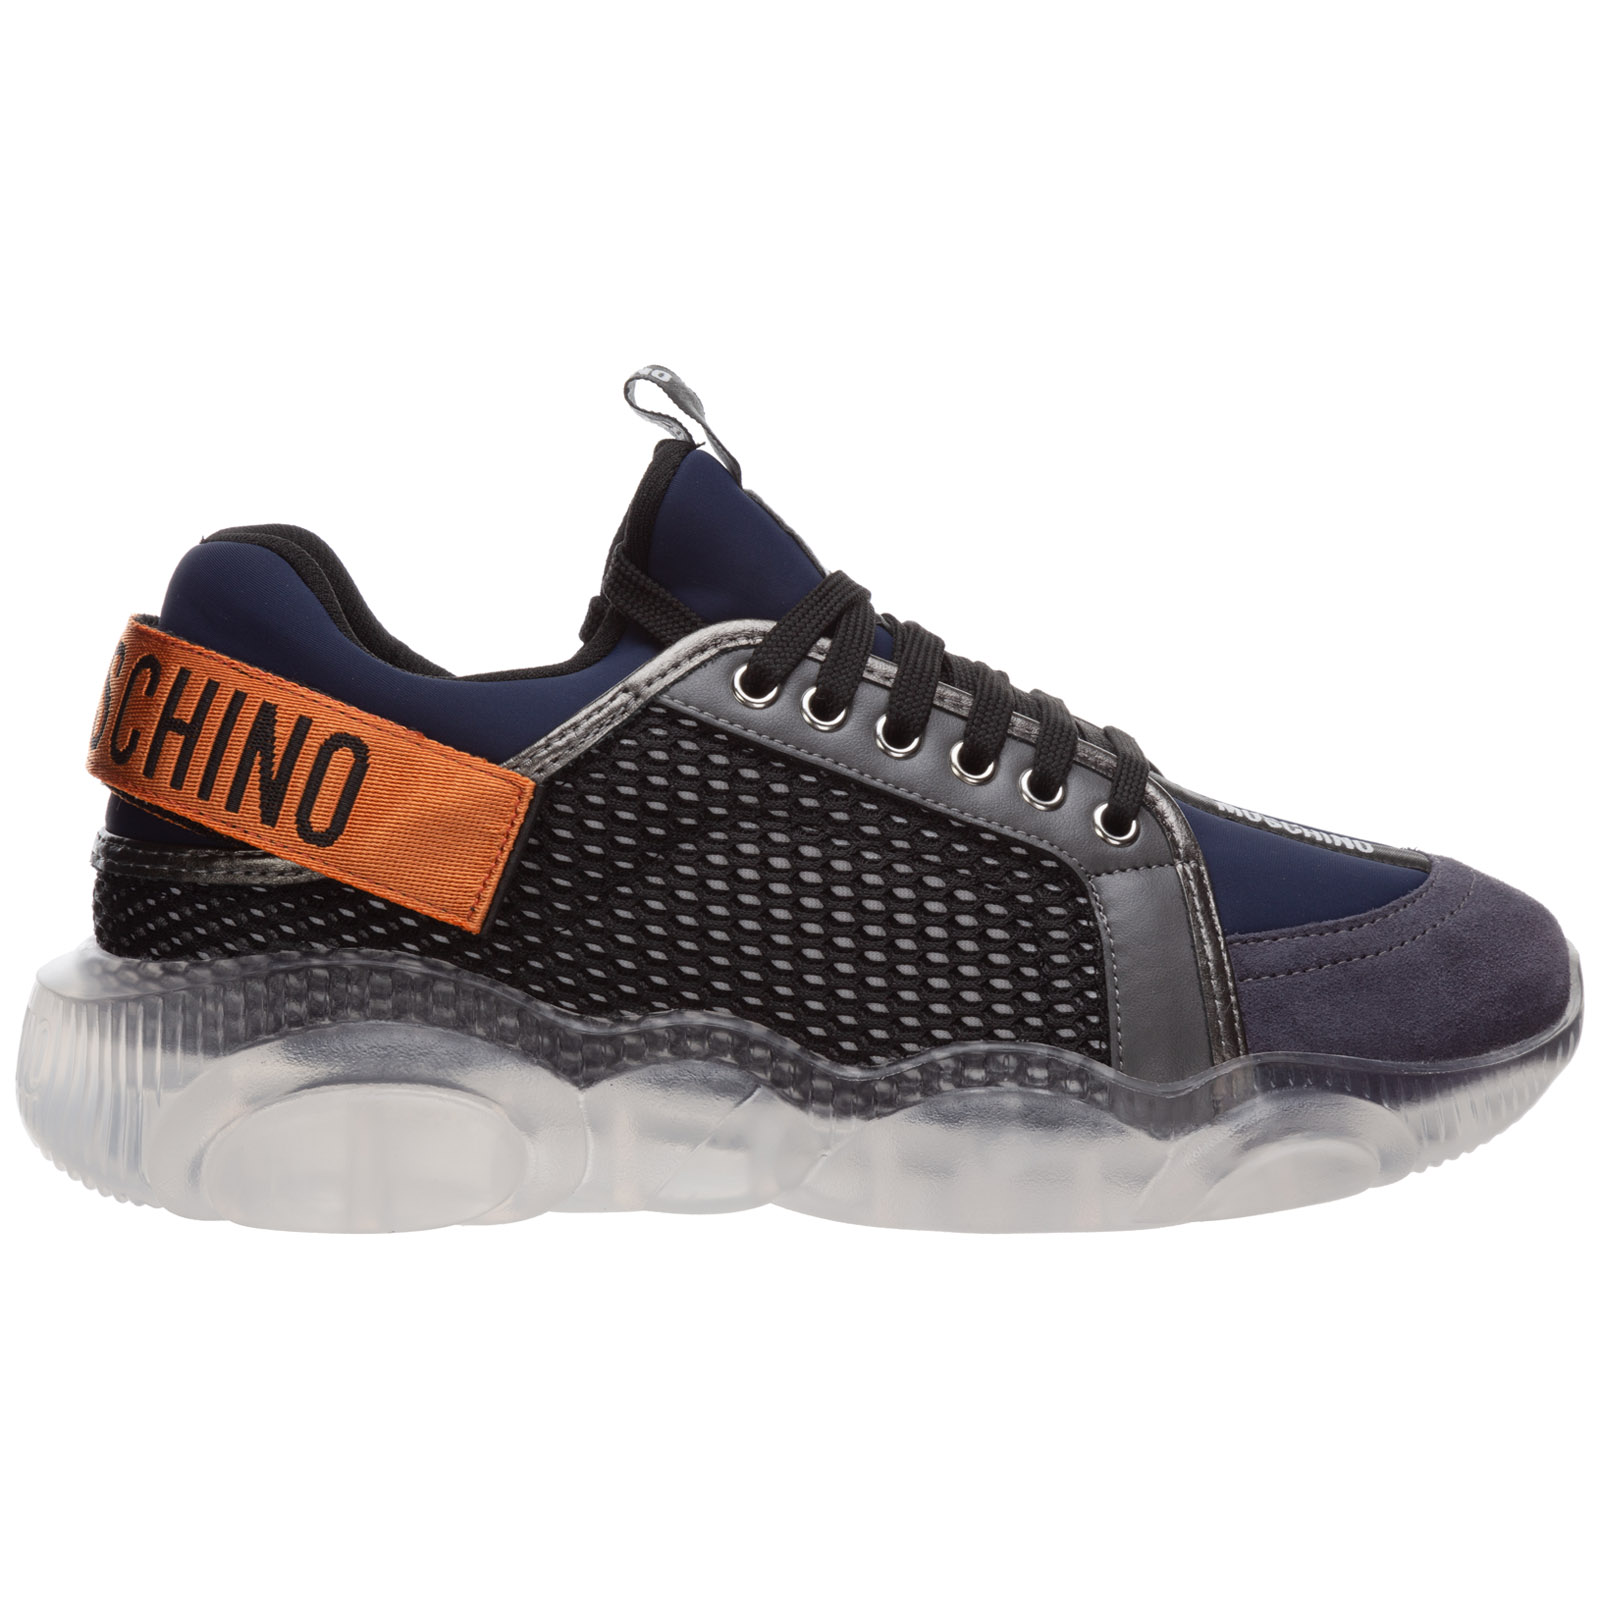 Moschino MEN'S SHOES TRAINERS SNEAKERS  TEDDY ORSO